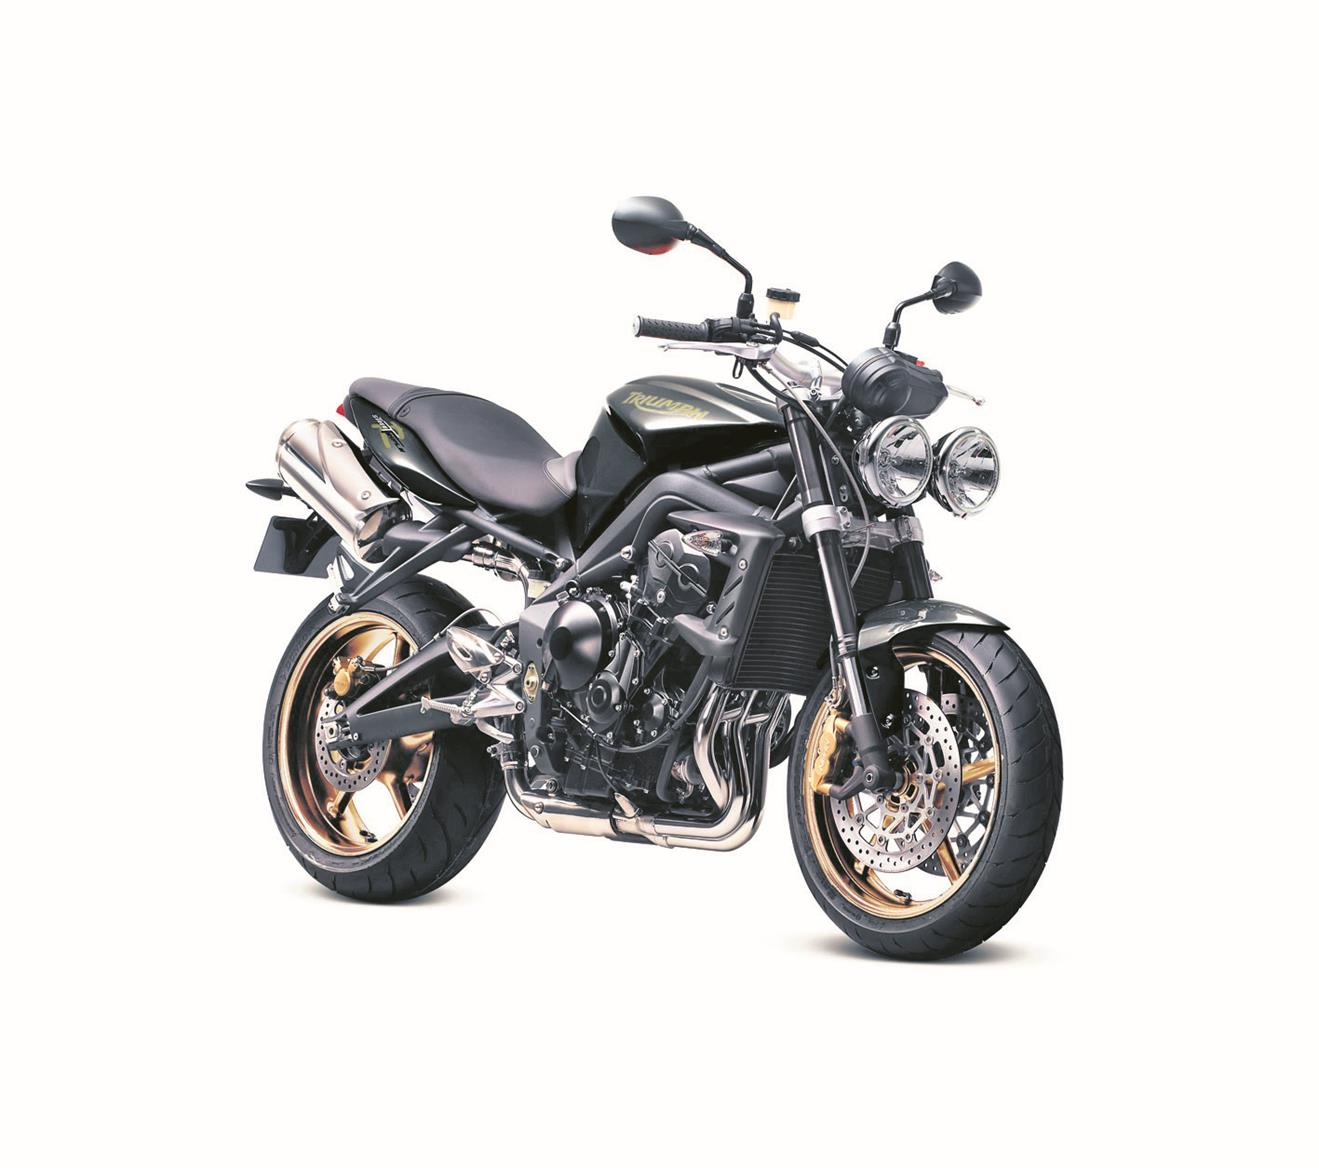 The Triumph Street Triple R